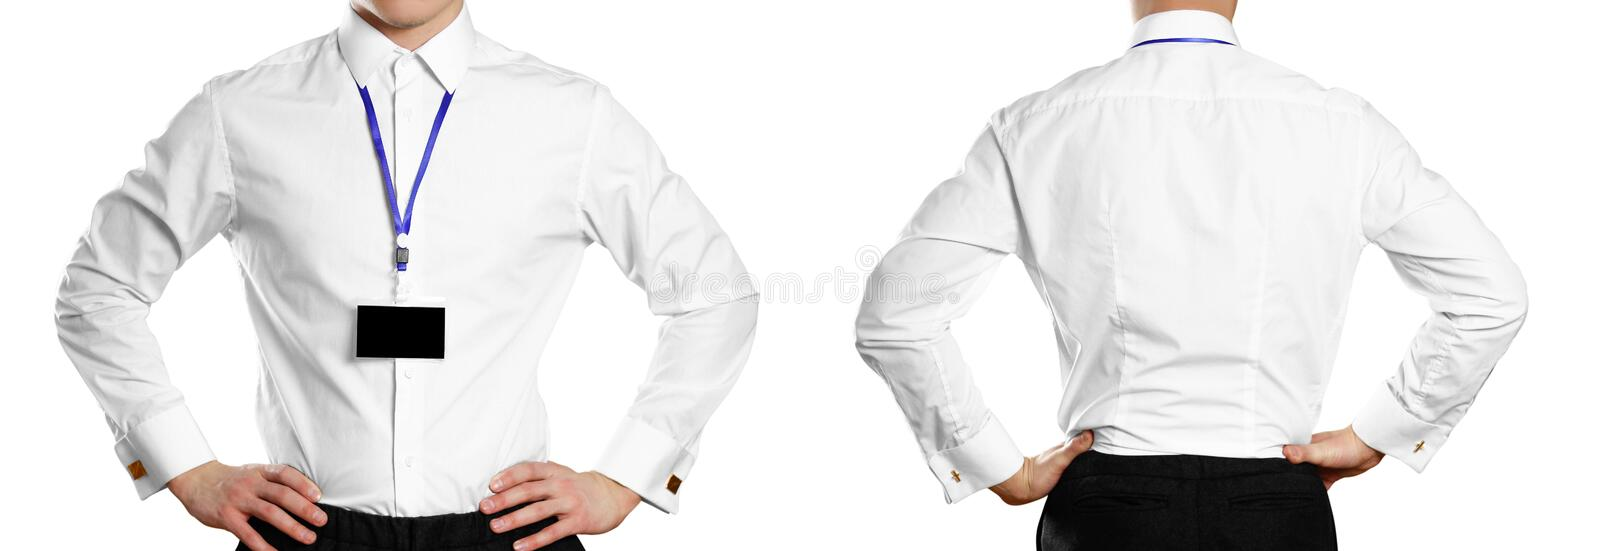 A man in a white shirt with a badge. Front and back. Close up. Isolated on white background royalty free stock image